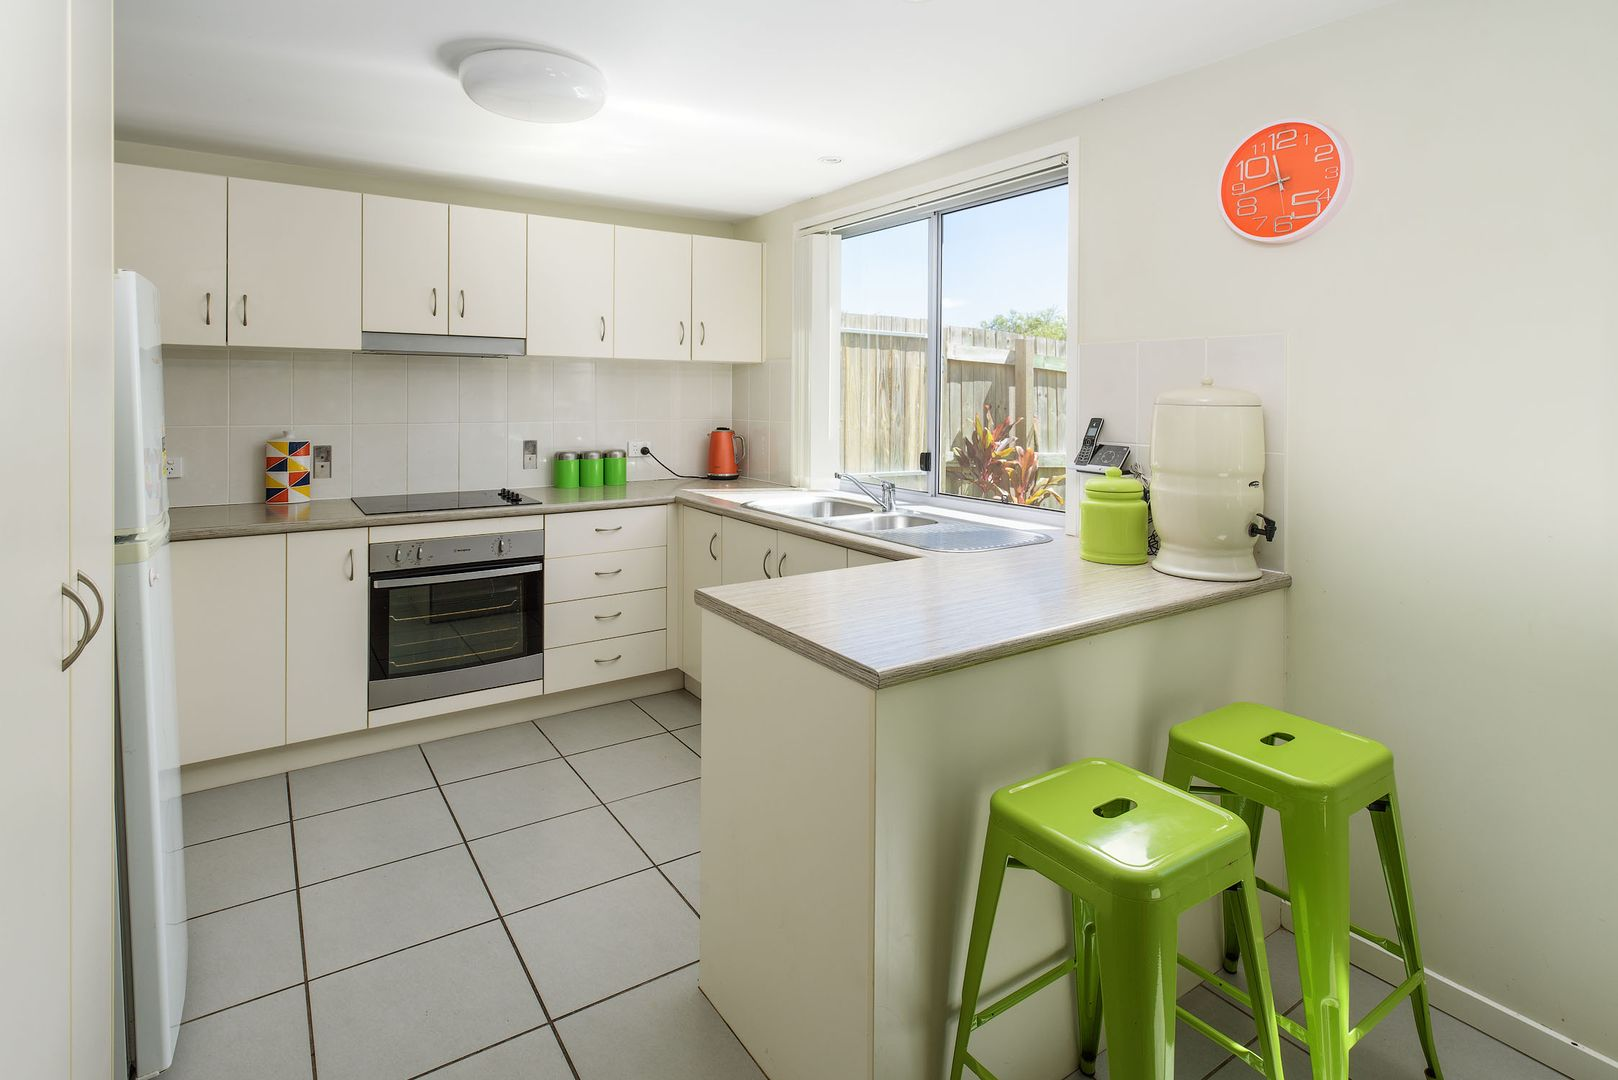 1/14 Banksia Drive, Gympie QLD 4570, Image 2